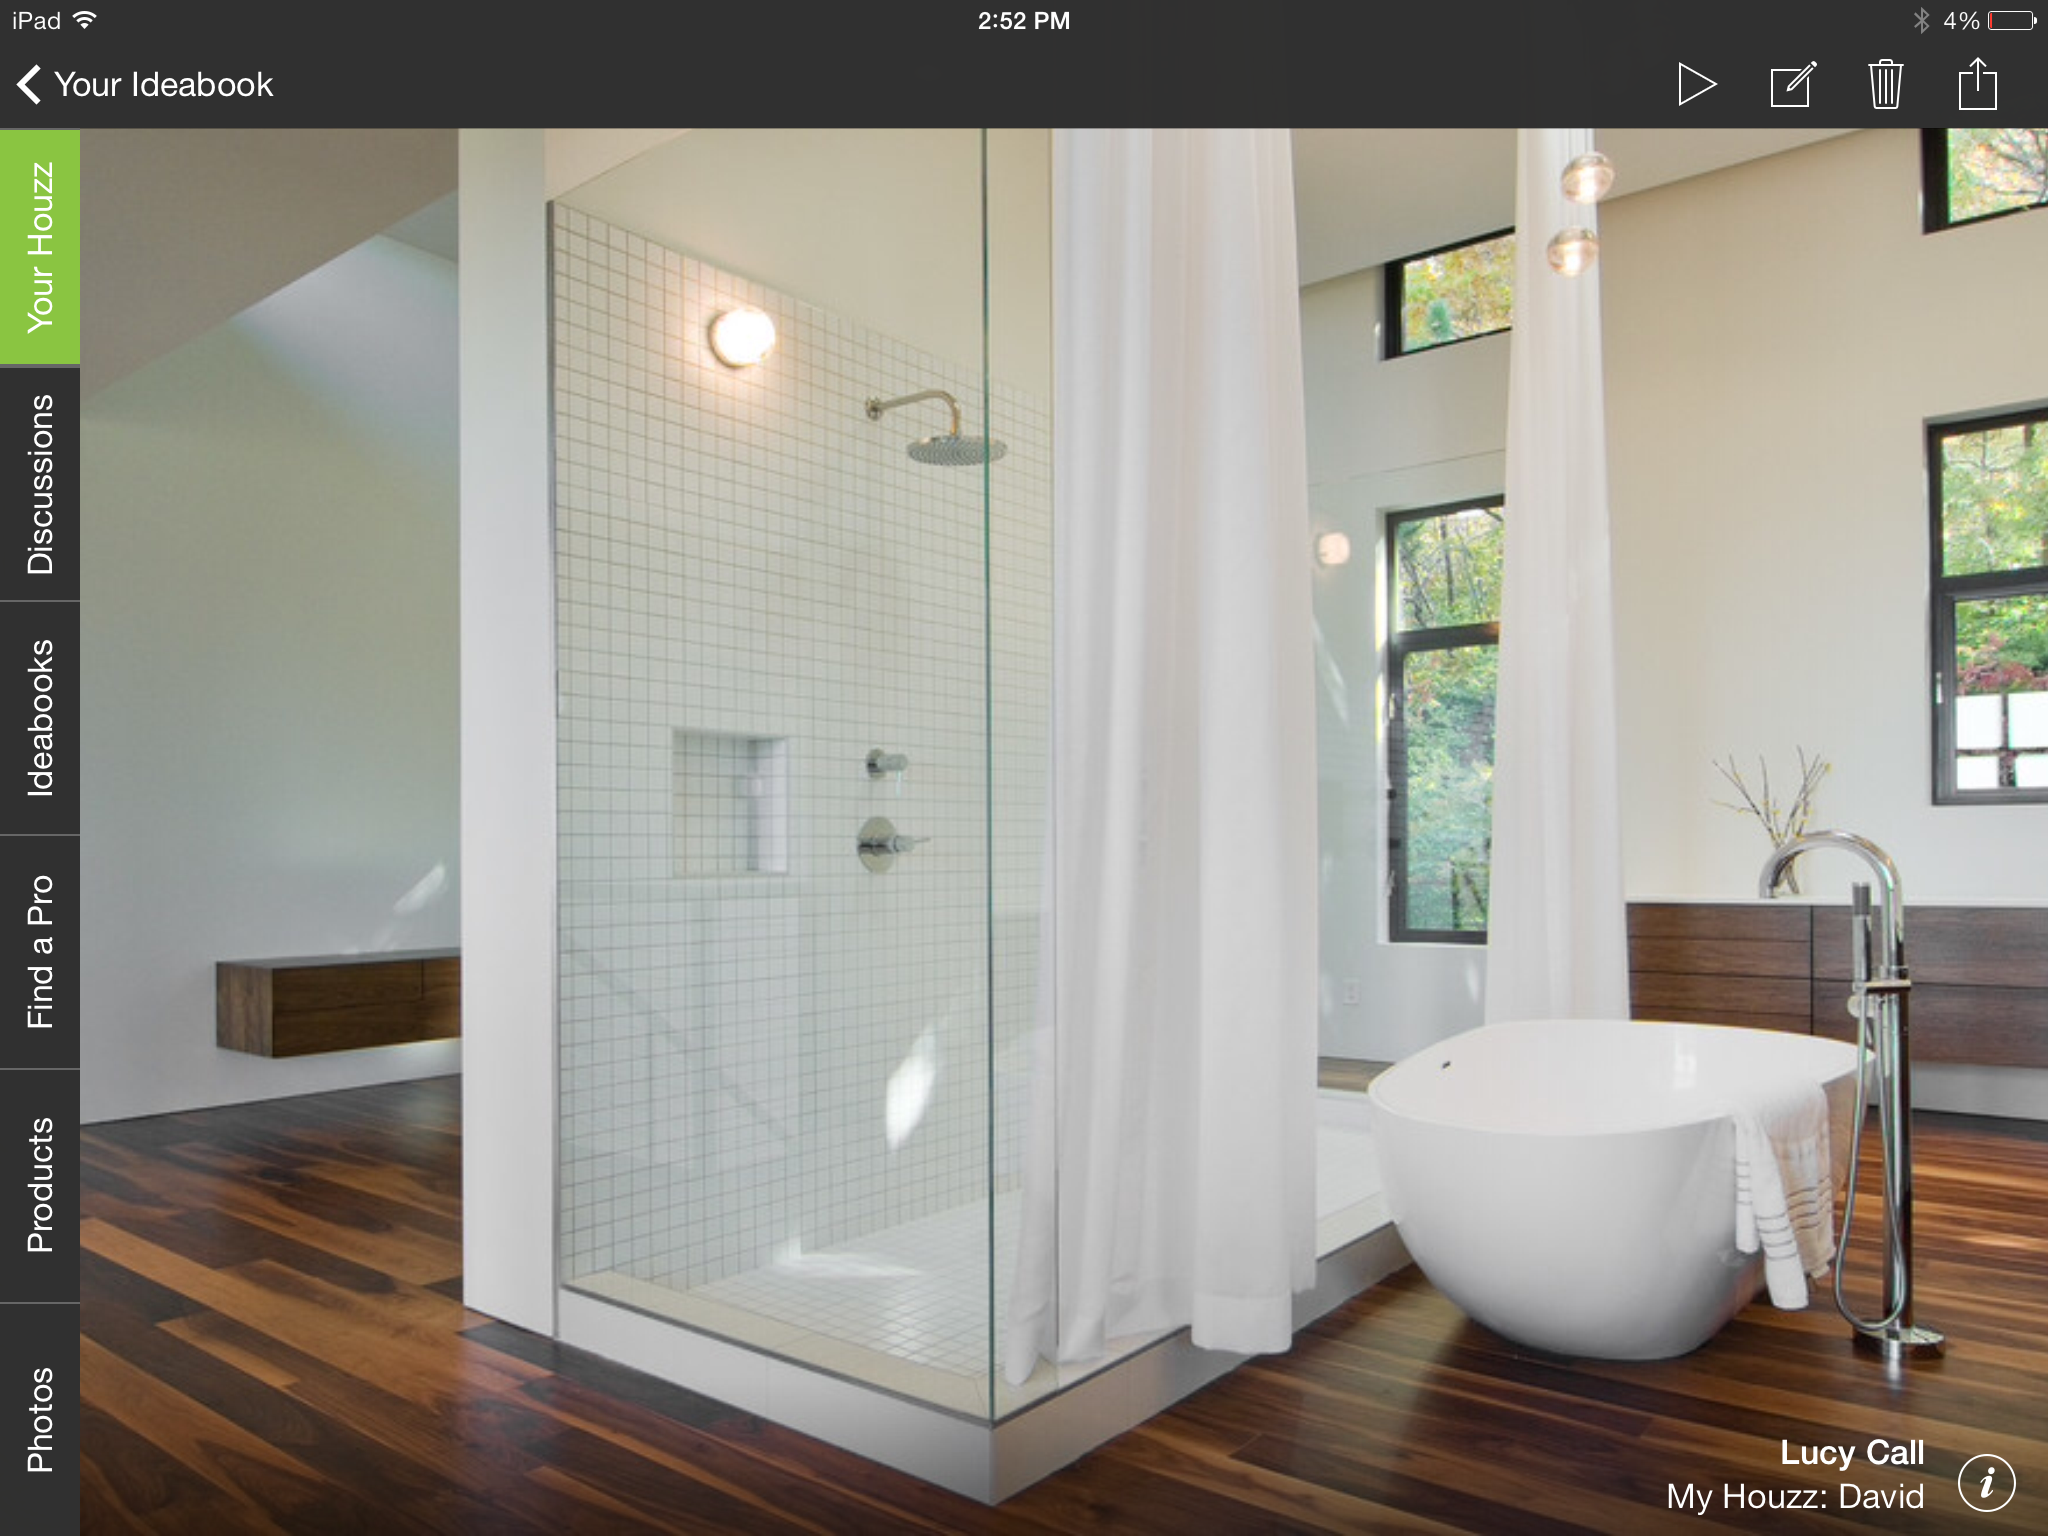 Dream Bathrooms Trends: Fewer Tubs, More Walls Around Toilets | Remodeling  | Bath, Tubs, Shower, Master Suite, Sinks, Bathroom Faucets, Houzz